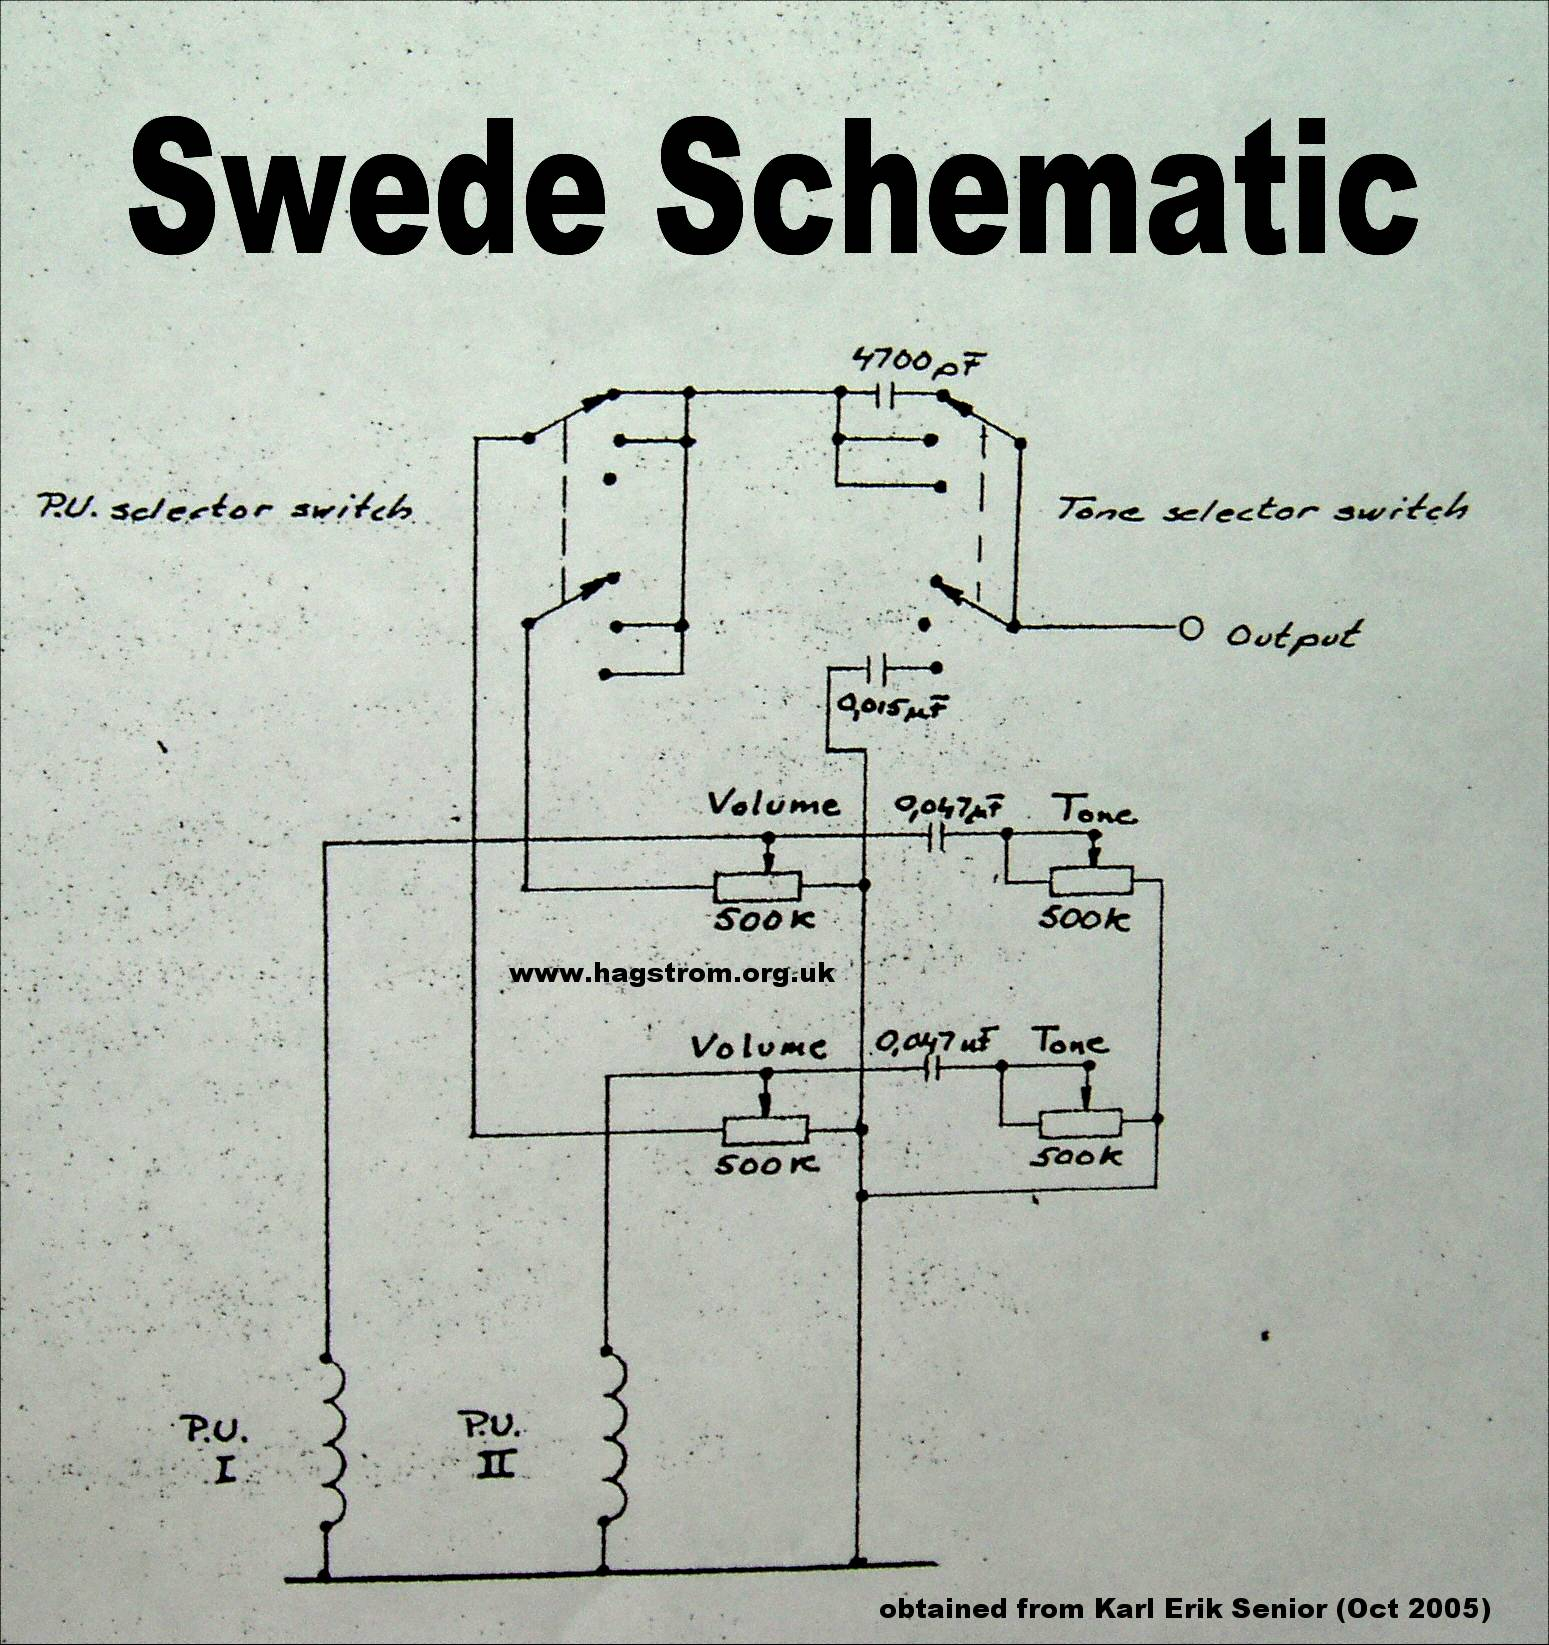 Hagstrom Swede Wiring Diagram 29 Images 1978 Fender Precision Bass Swede2 At Highcare